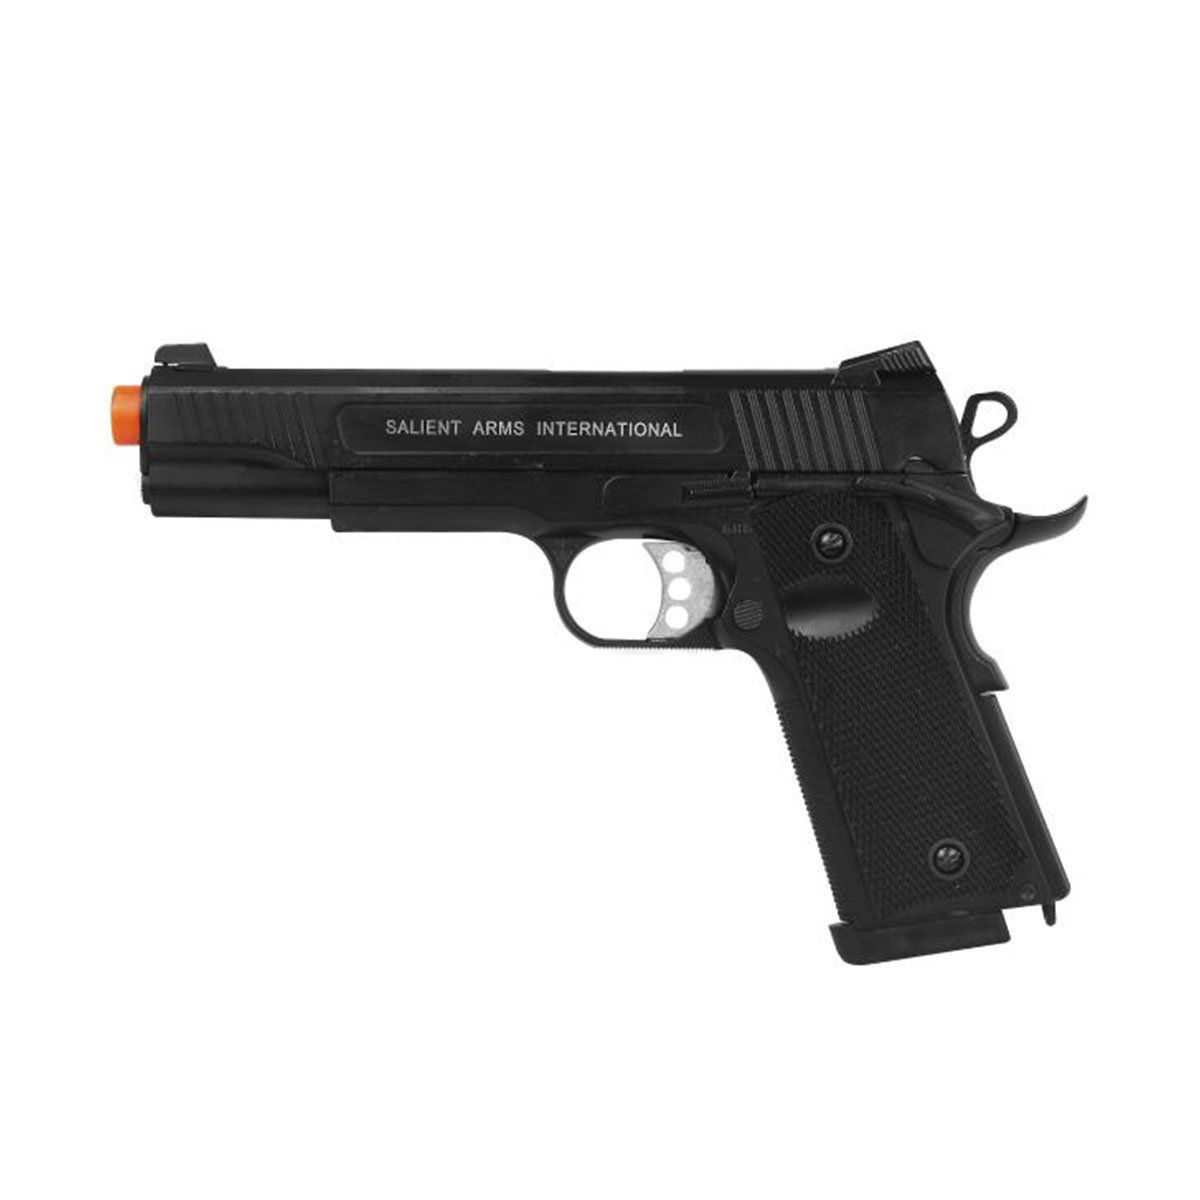 Pistola de Airsoft Double Bell 1911 S.A.I. Custom GBB 6mm